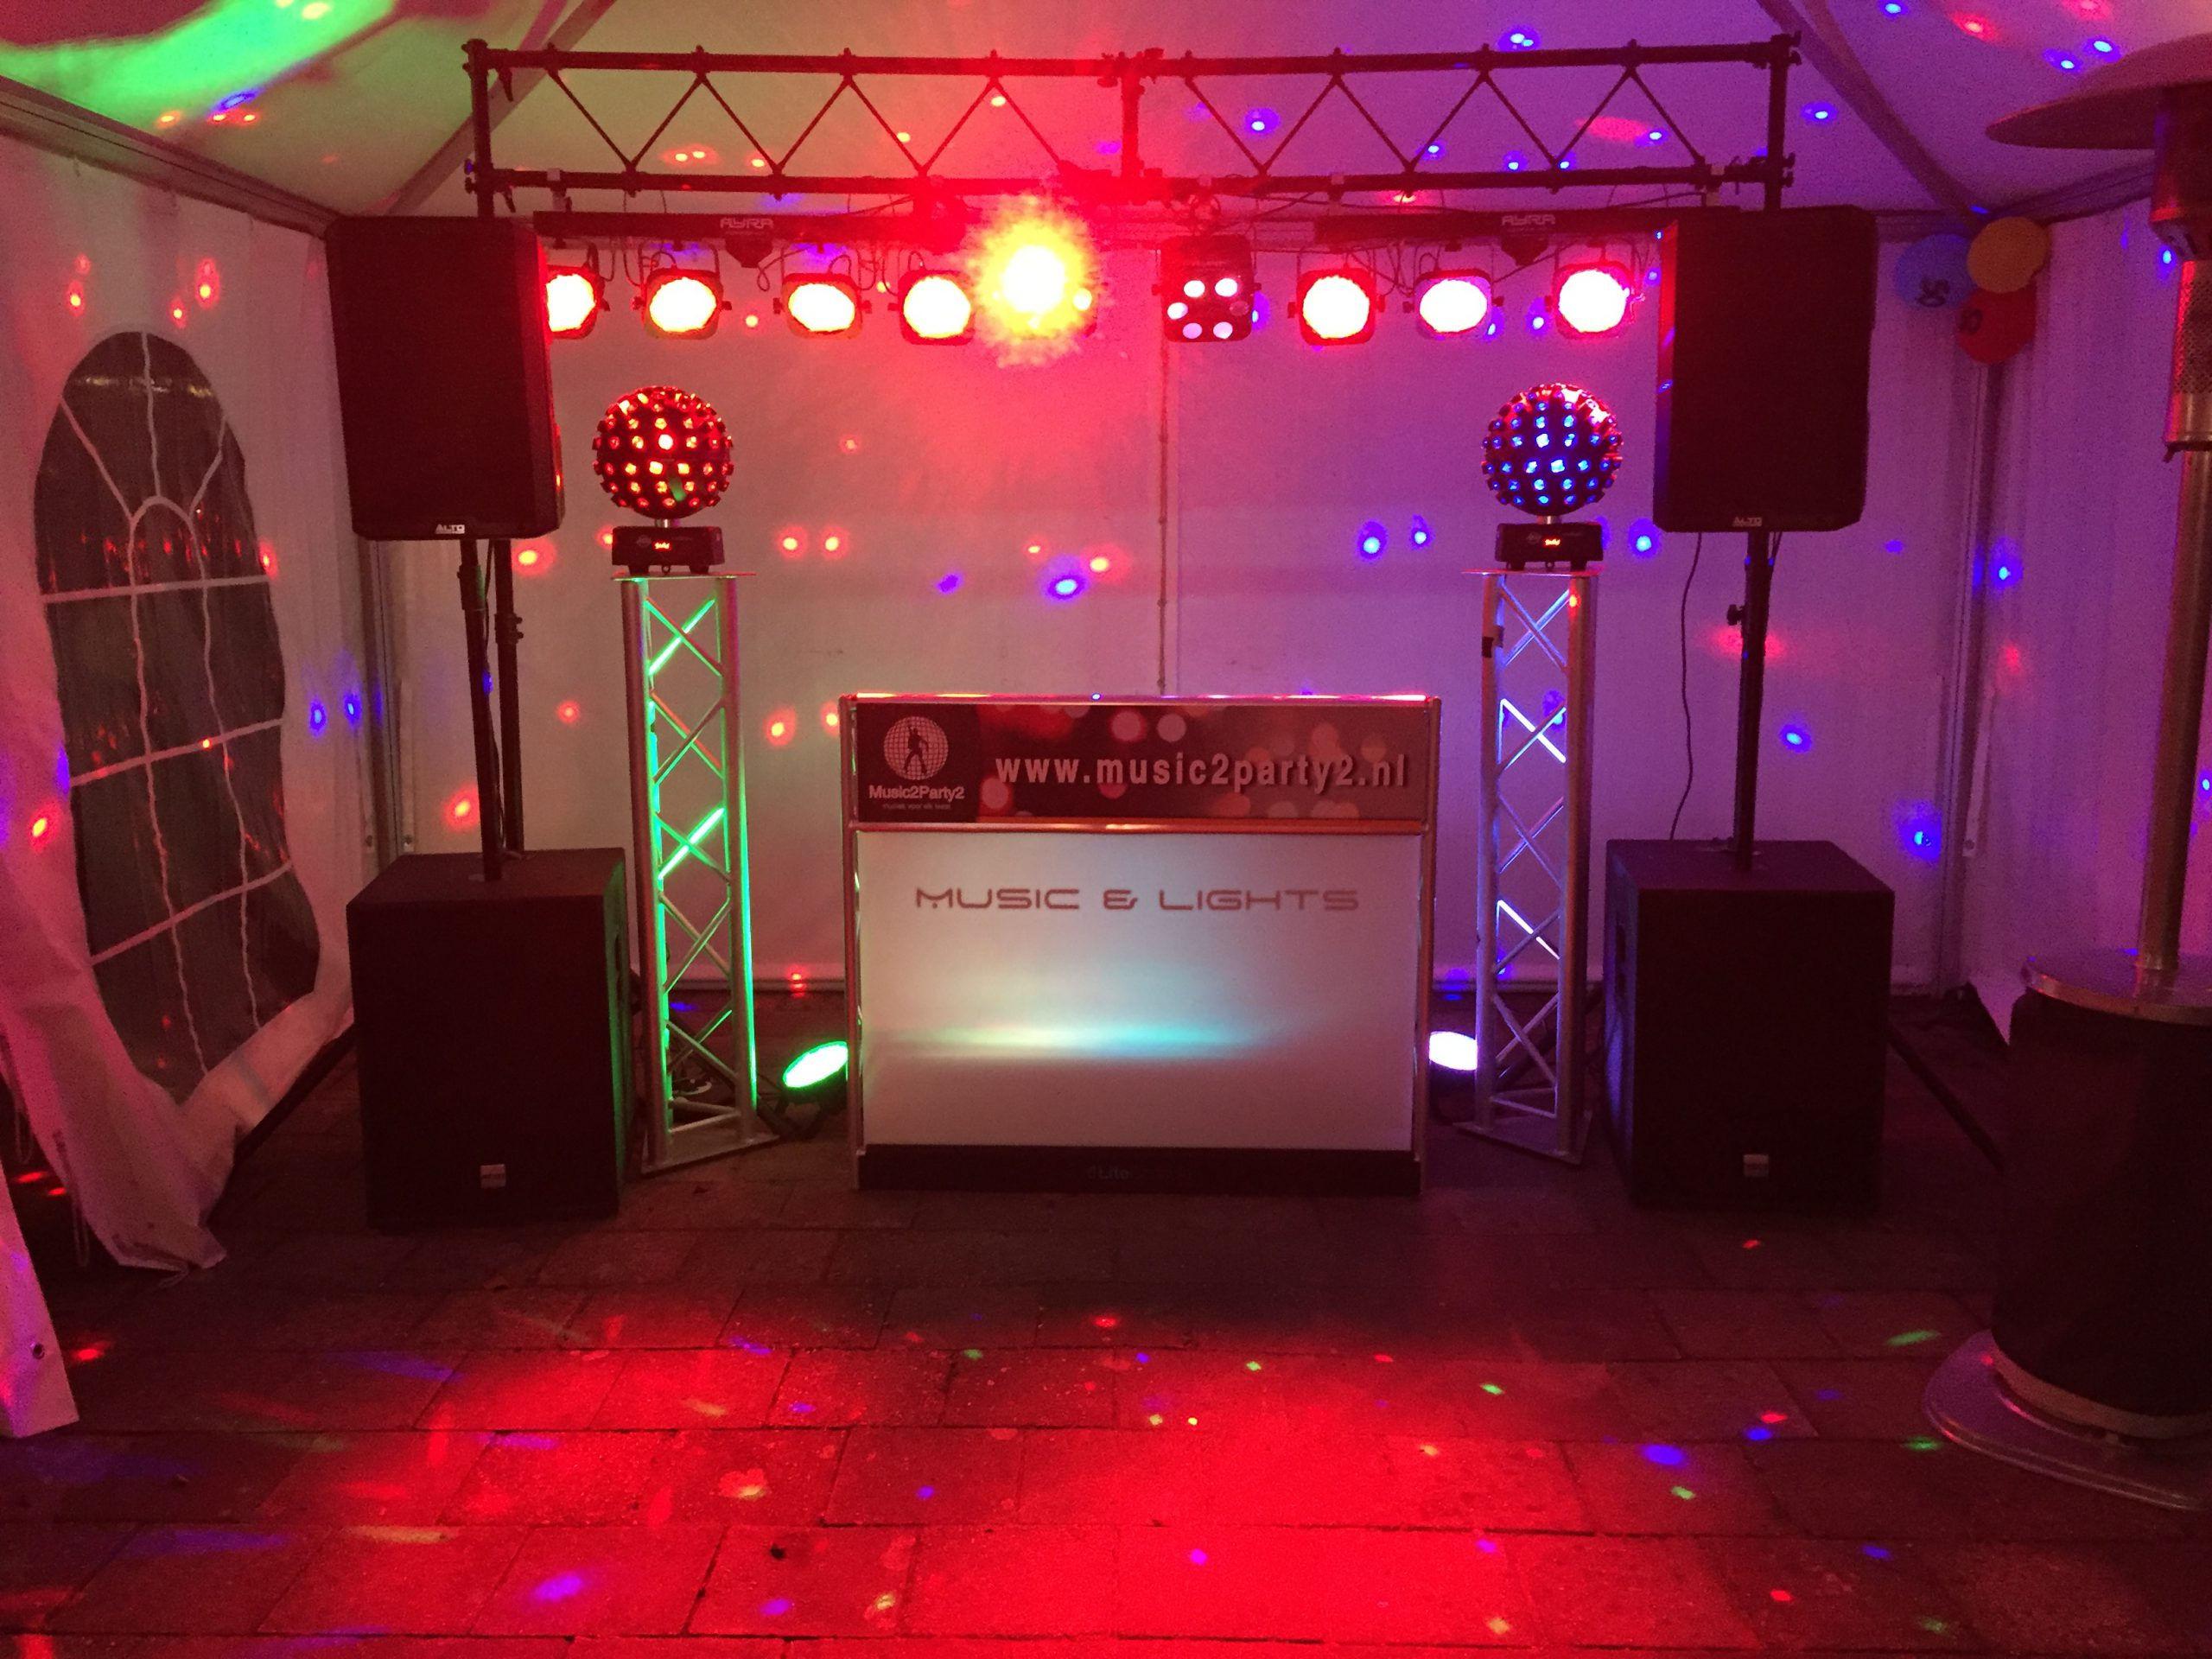 Music2Party2 Opstelling Abraham feest in Oosterhout